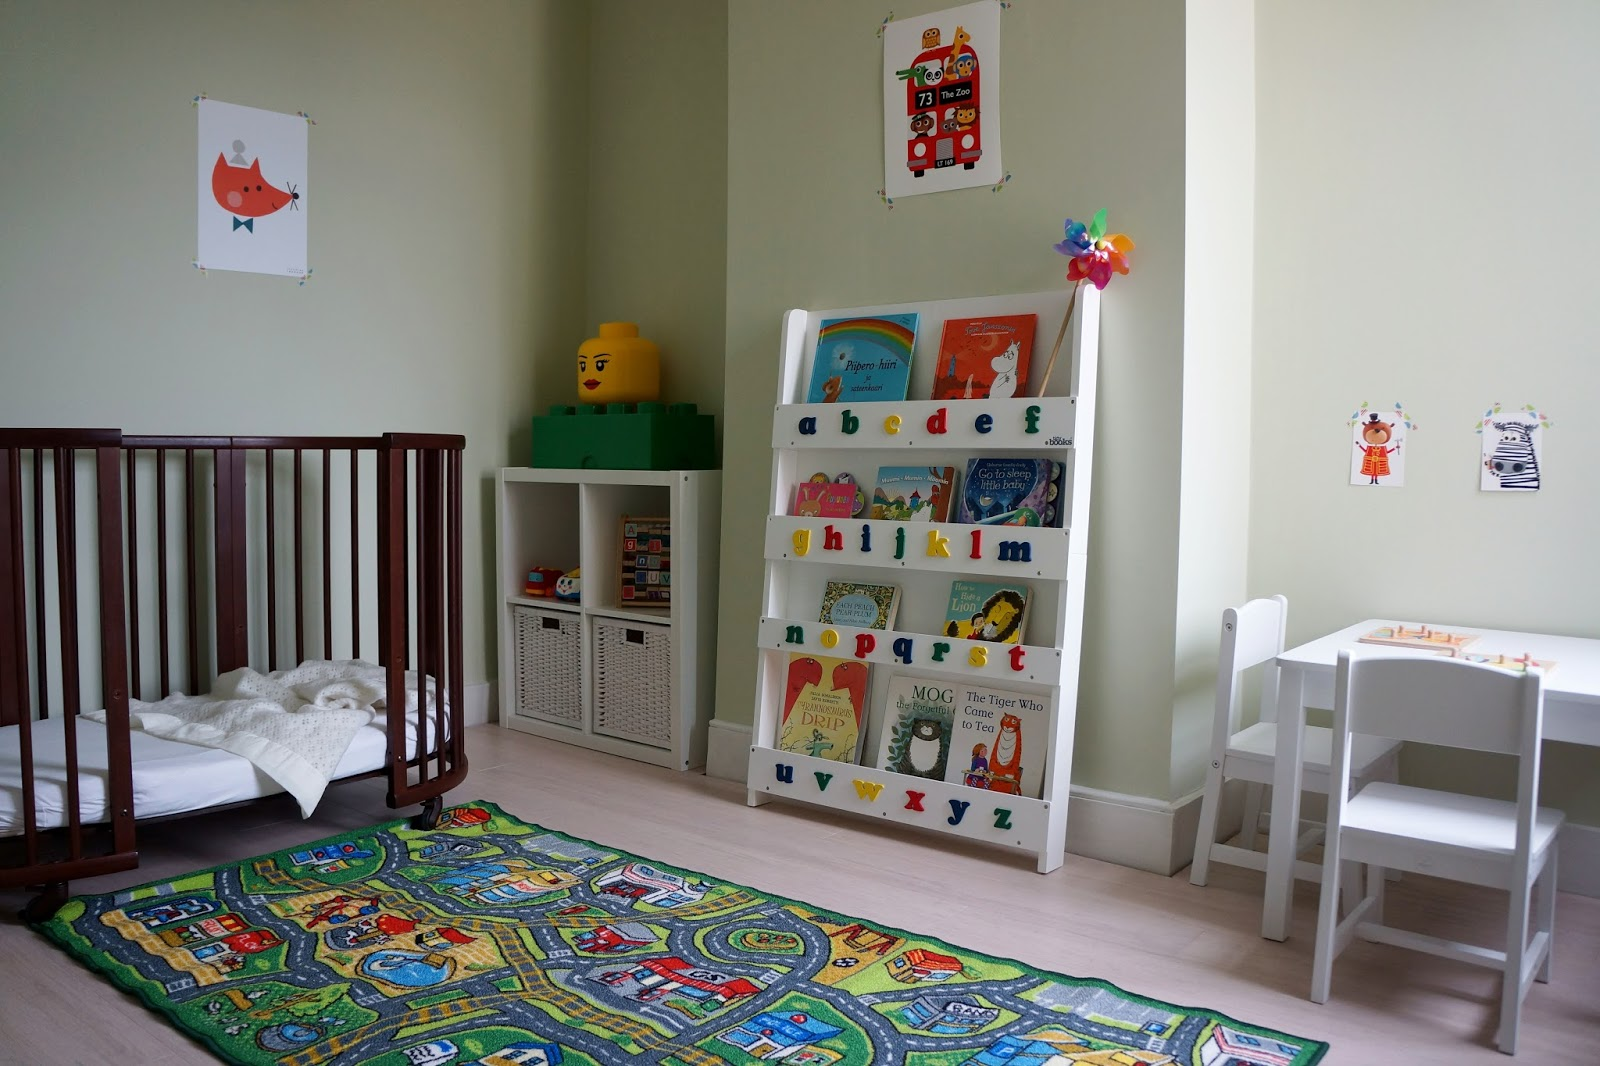 Introducing our fun and toddlerfriendly baby bedroom